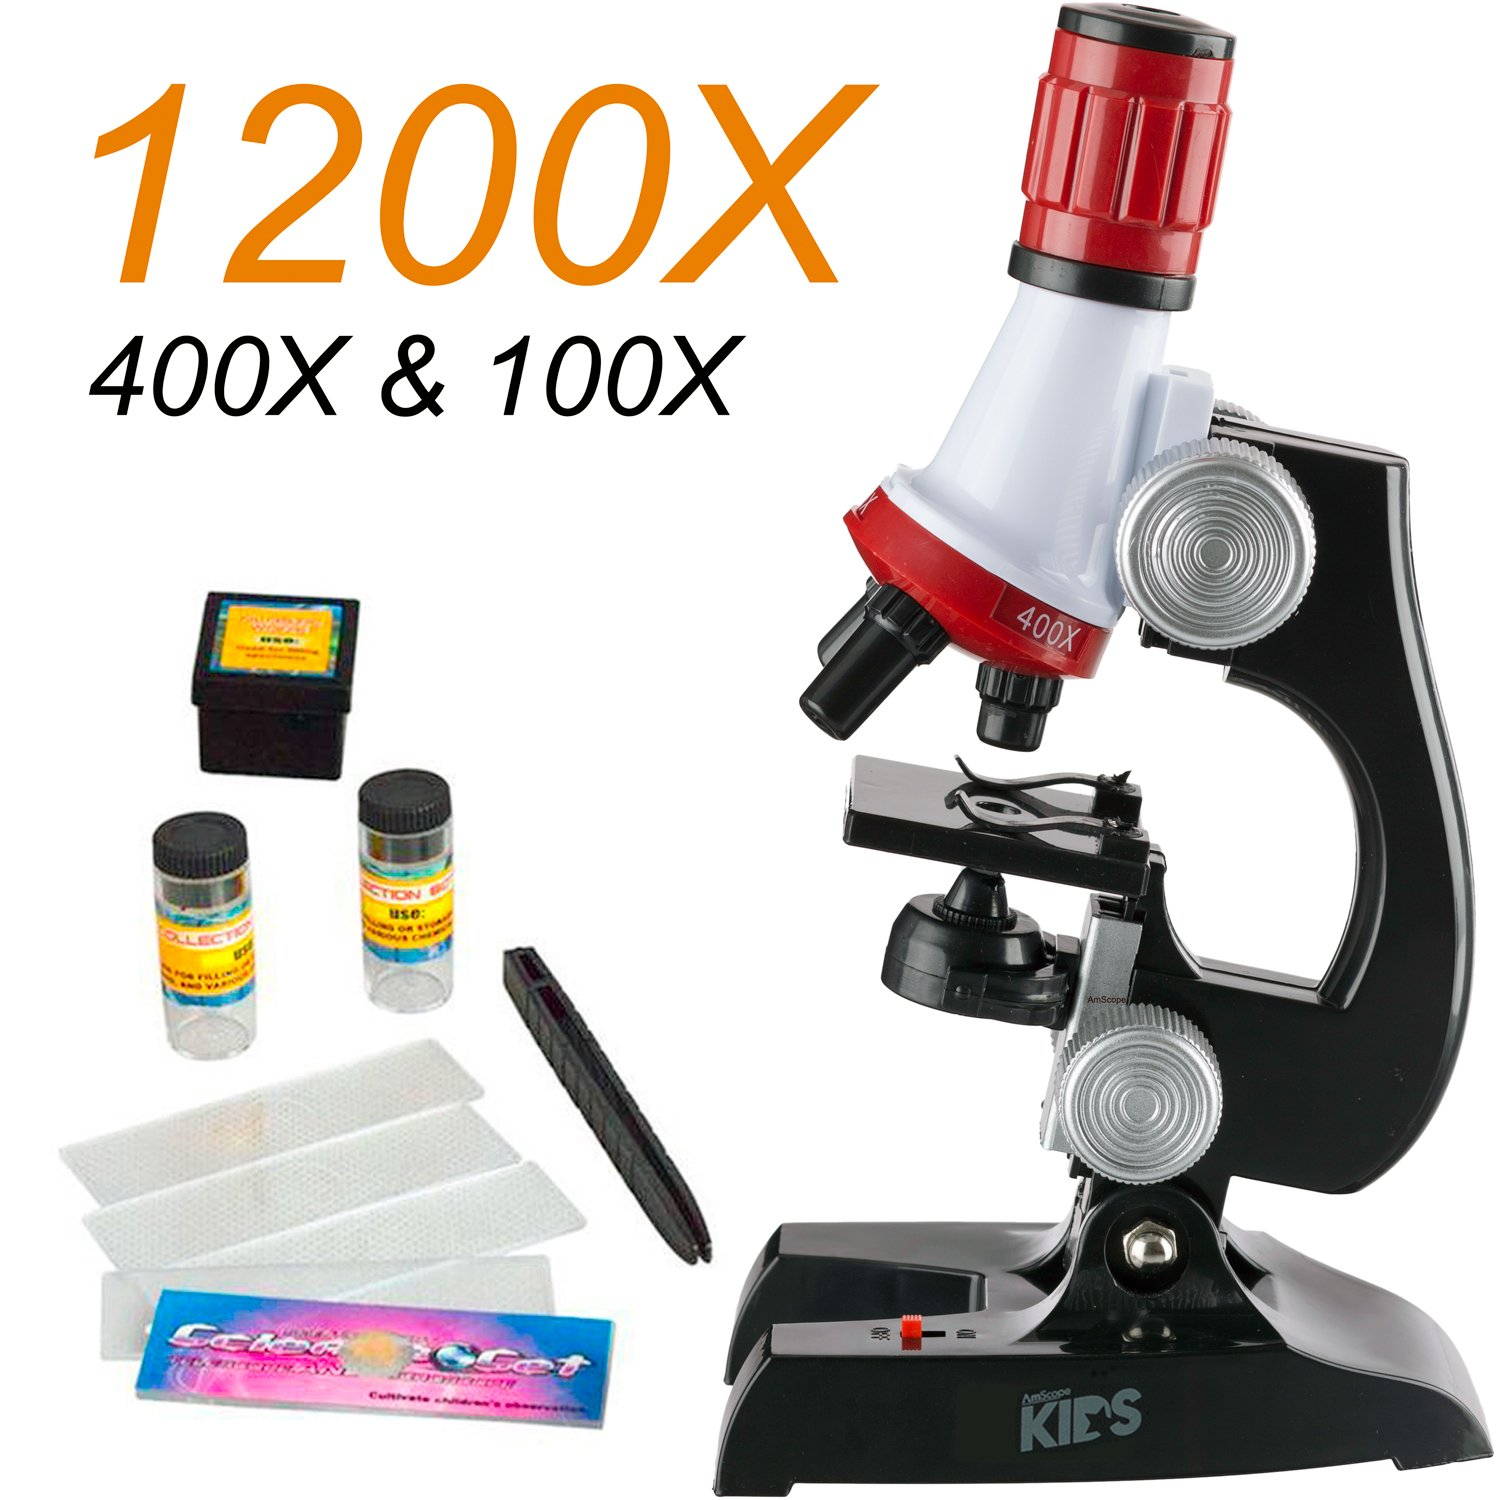 400x ALEENFOON Kids Microscope 100x Magnification Children Science Microscope Kit with LED Lights Includes Accessory Toy Set for Beginners Early Education 1200x